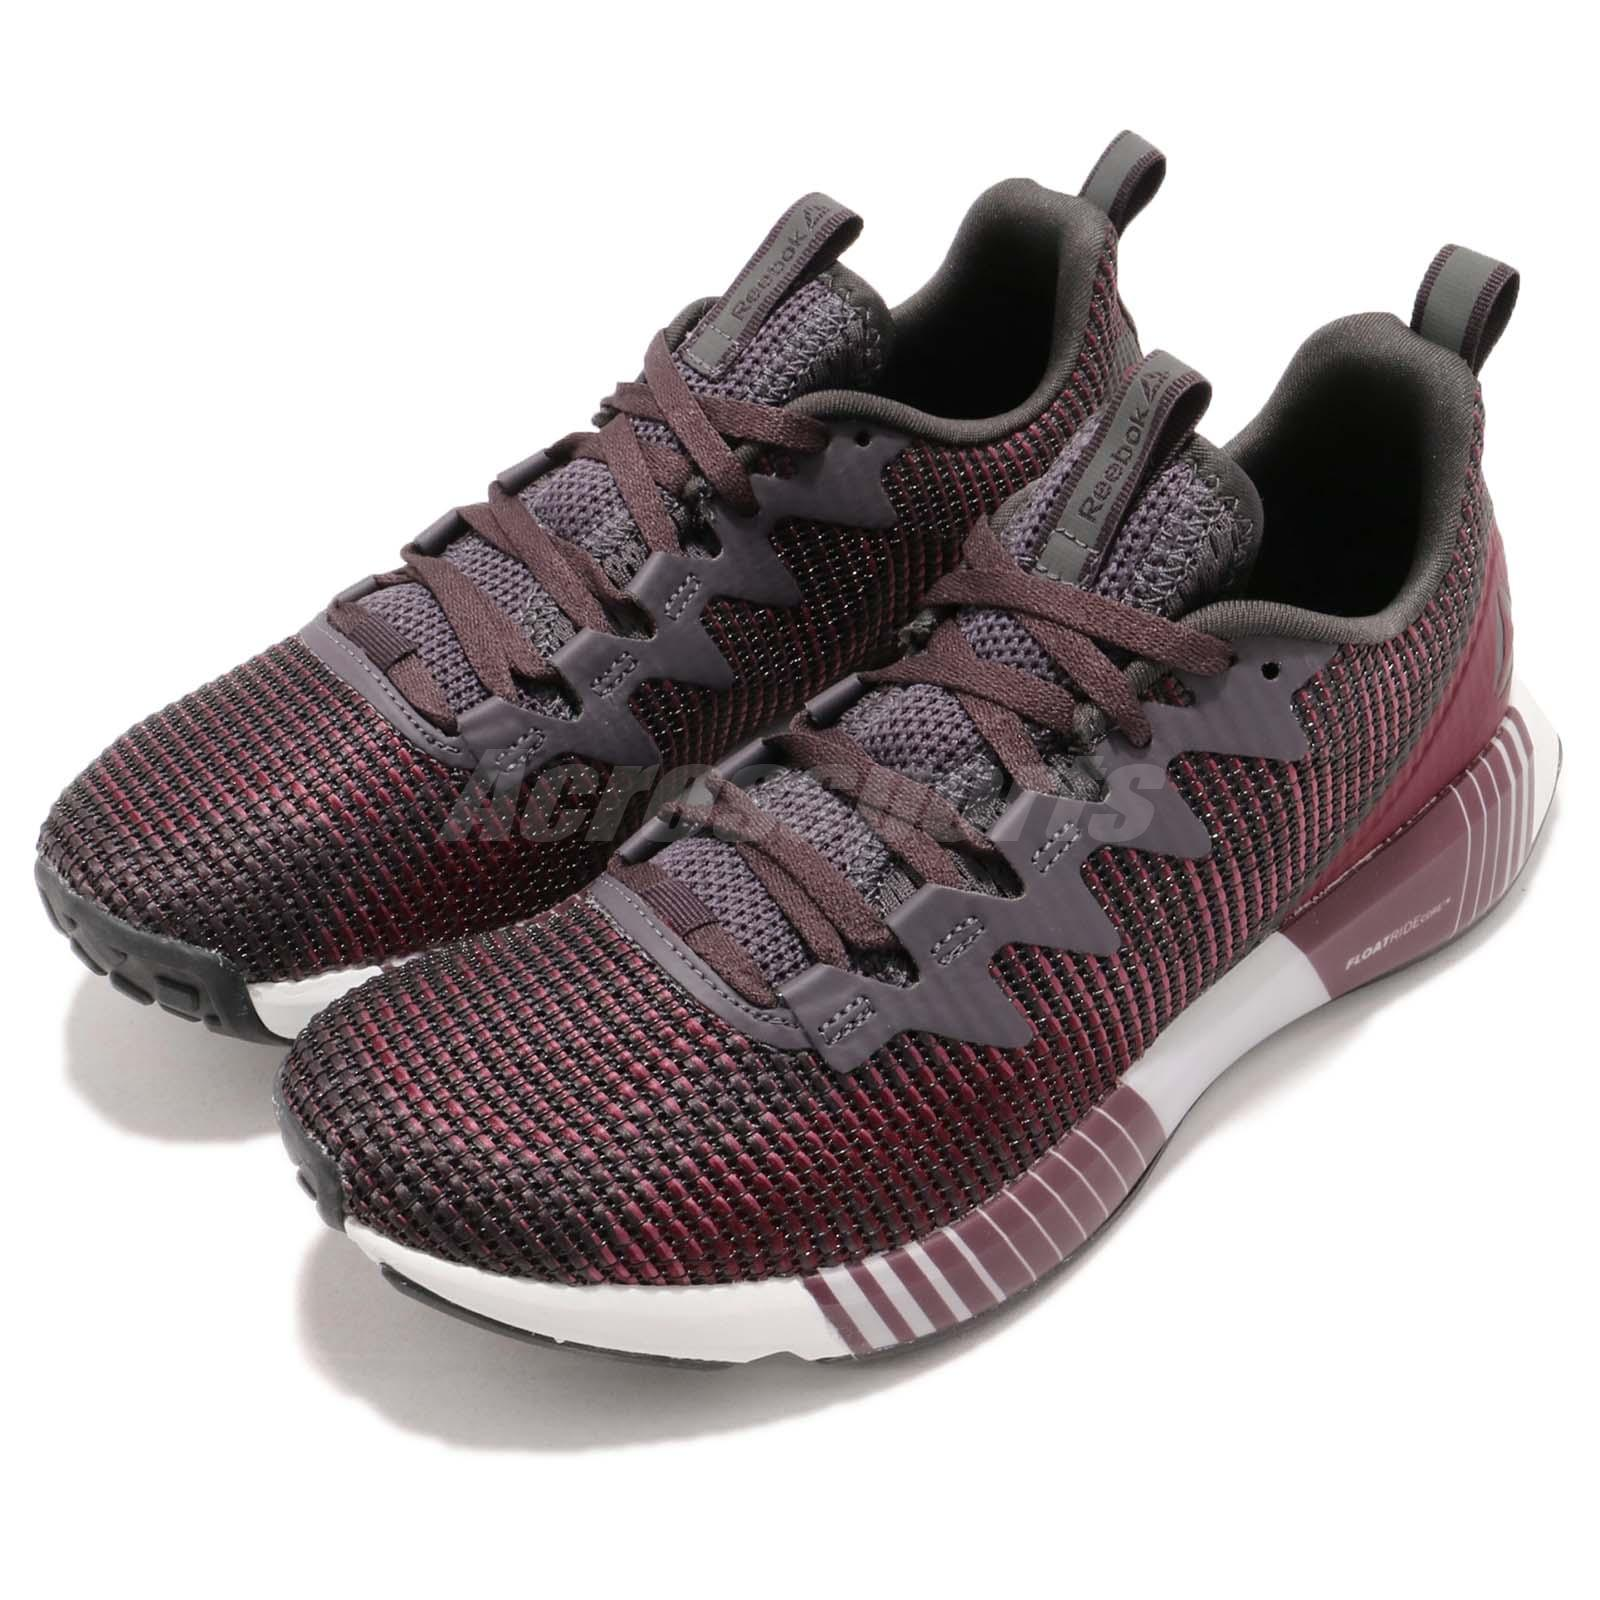 c35612bedc8d20 Details about Reebok Fusion Flexweave Red Black White Women Running Shoes  Sneakers CN2857